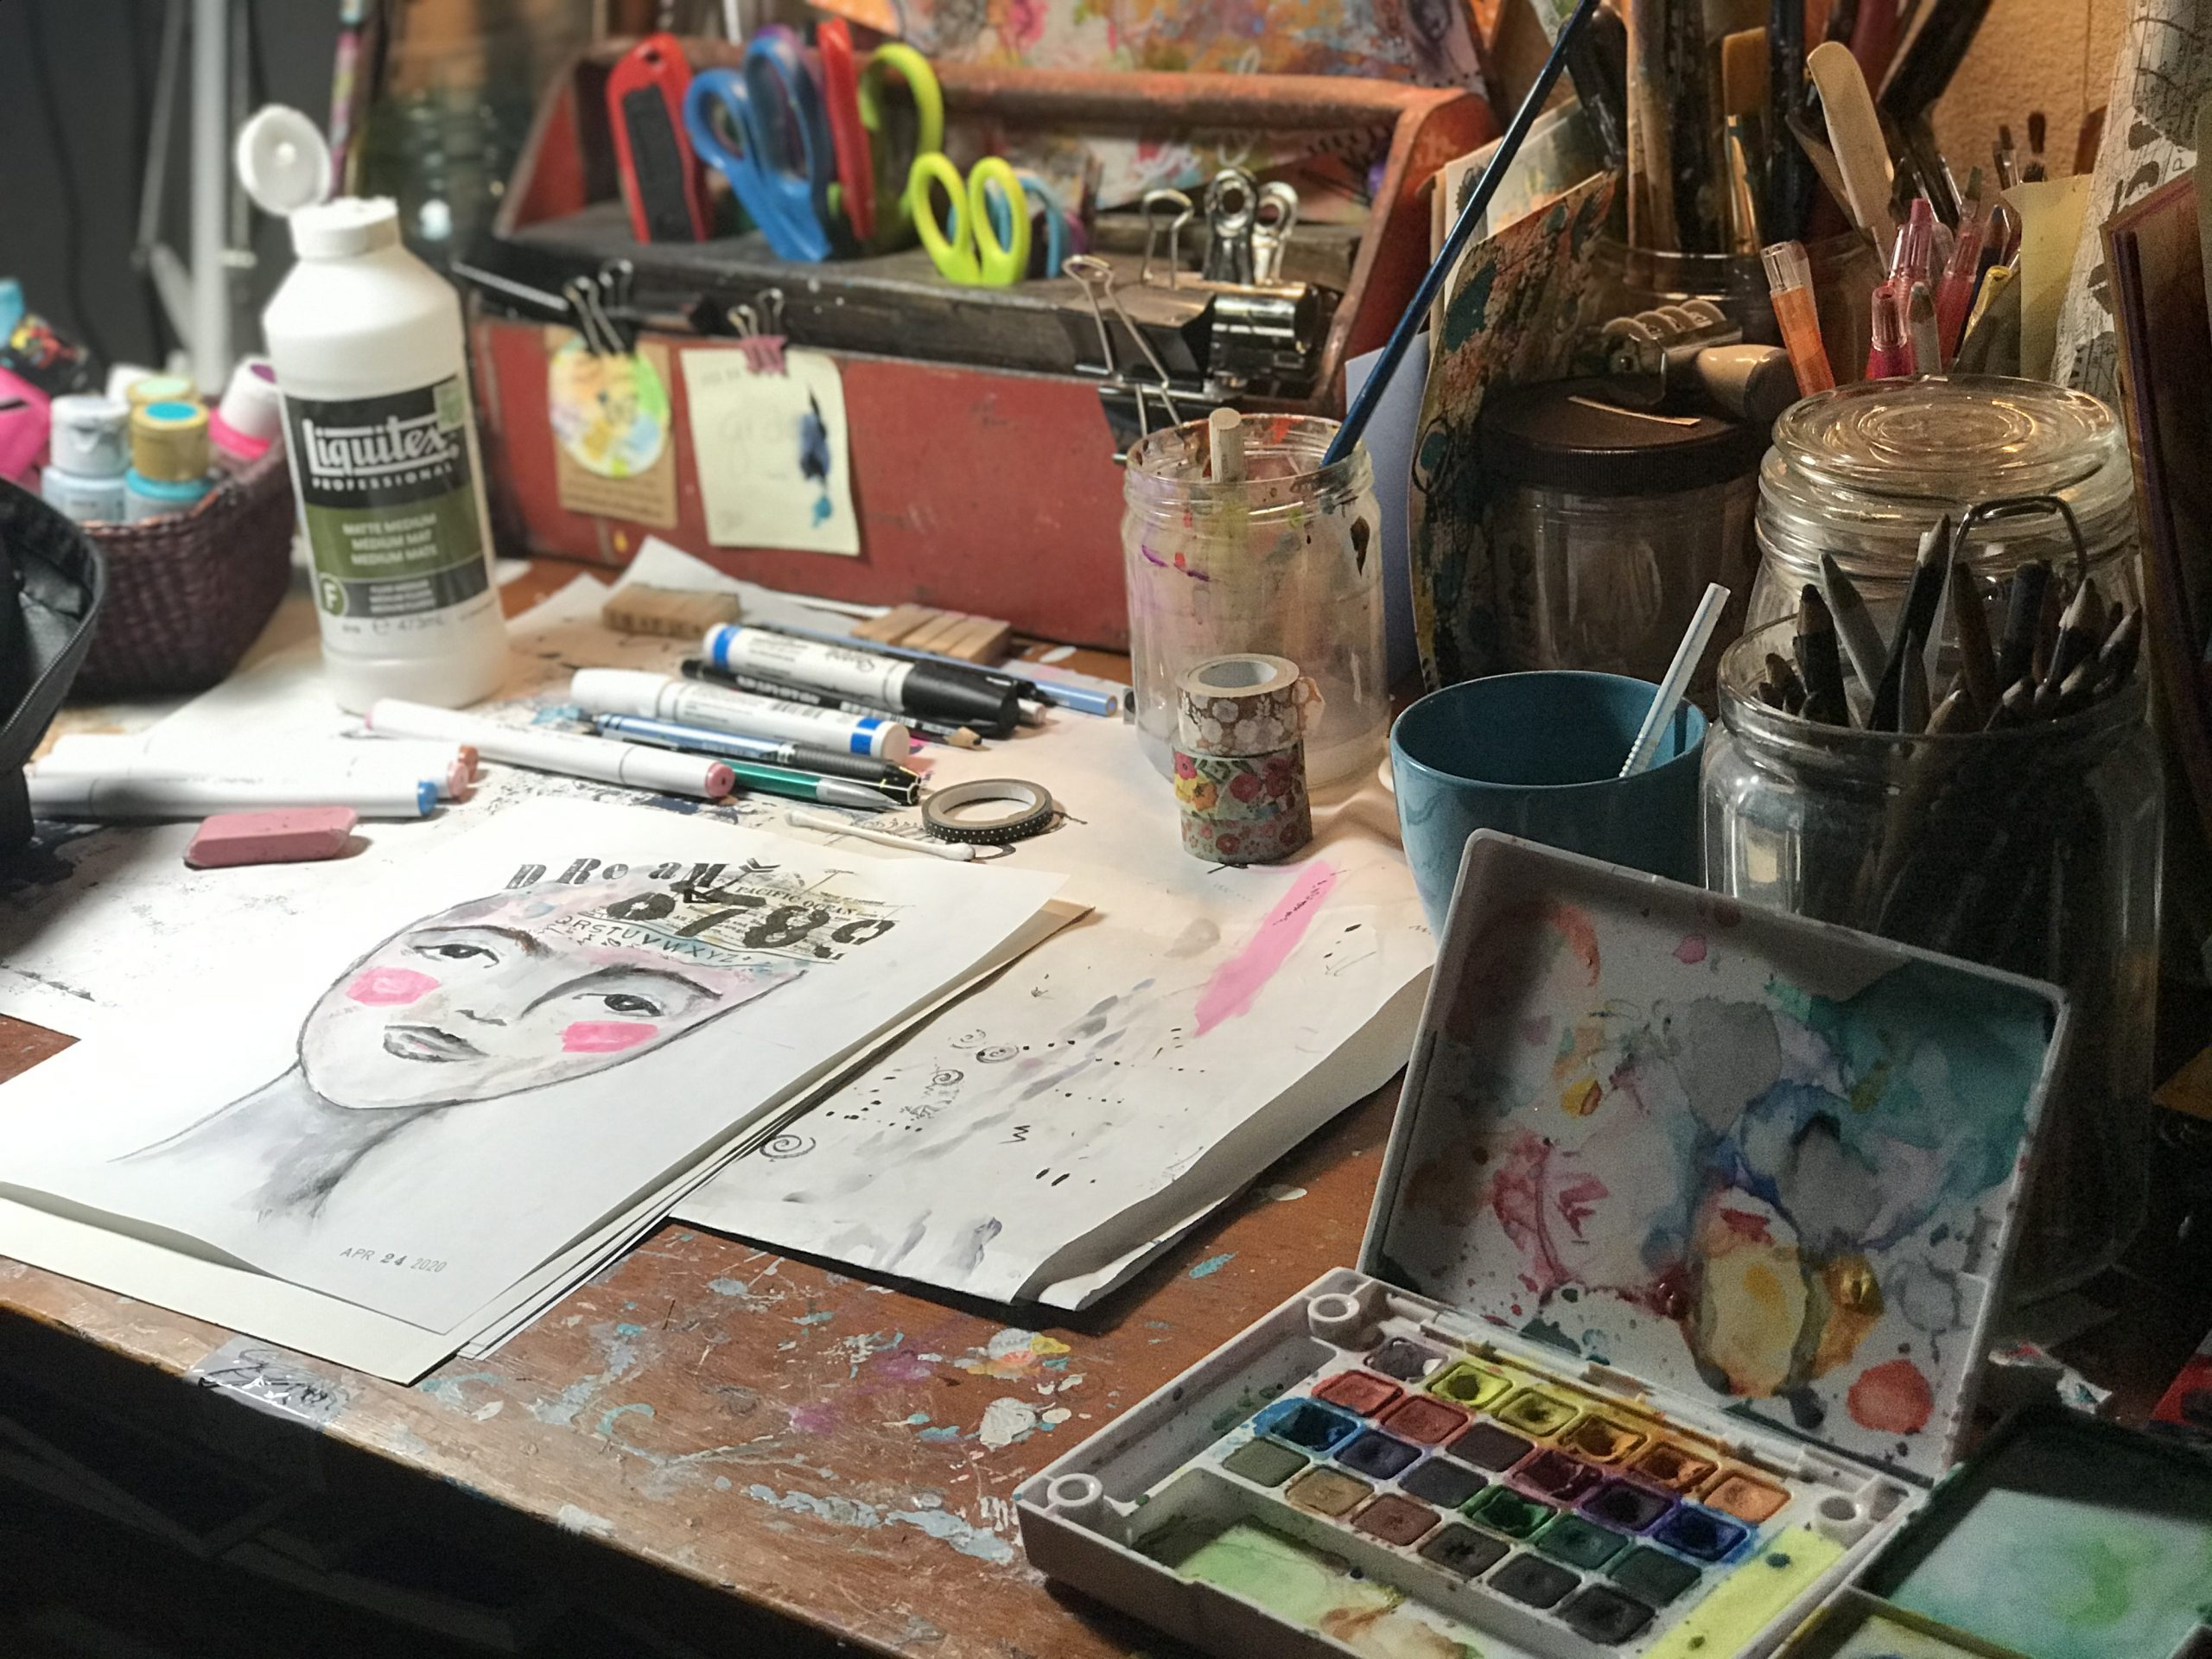 art studio worktable with supplies for making a face